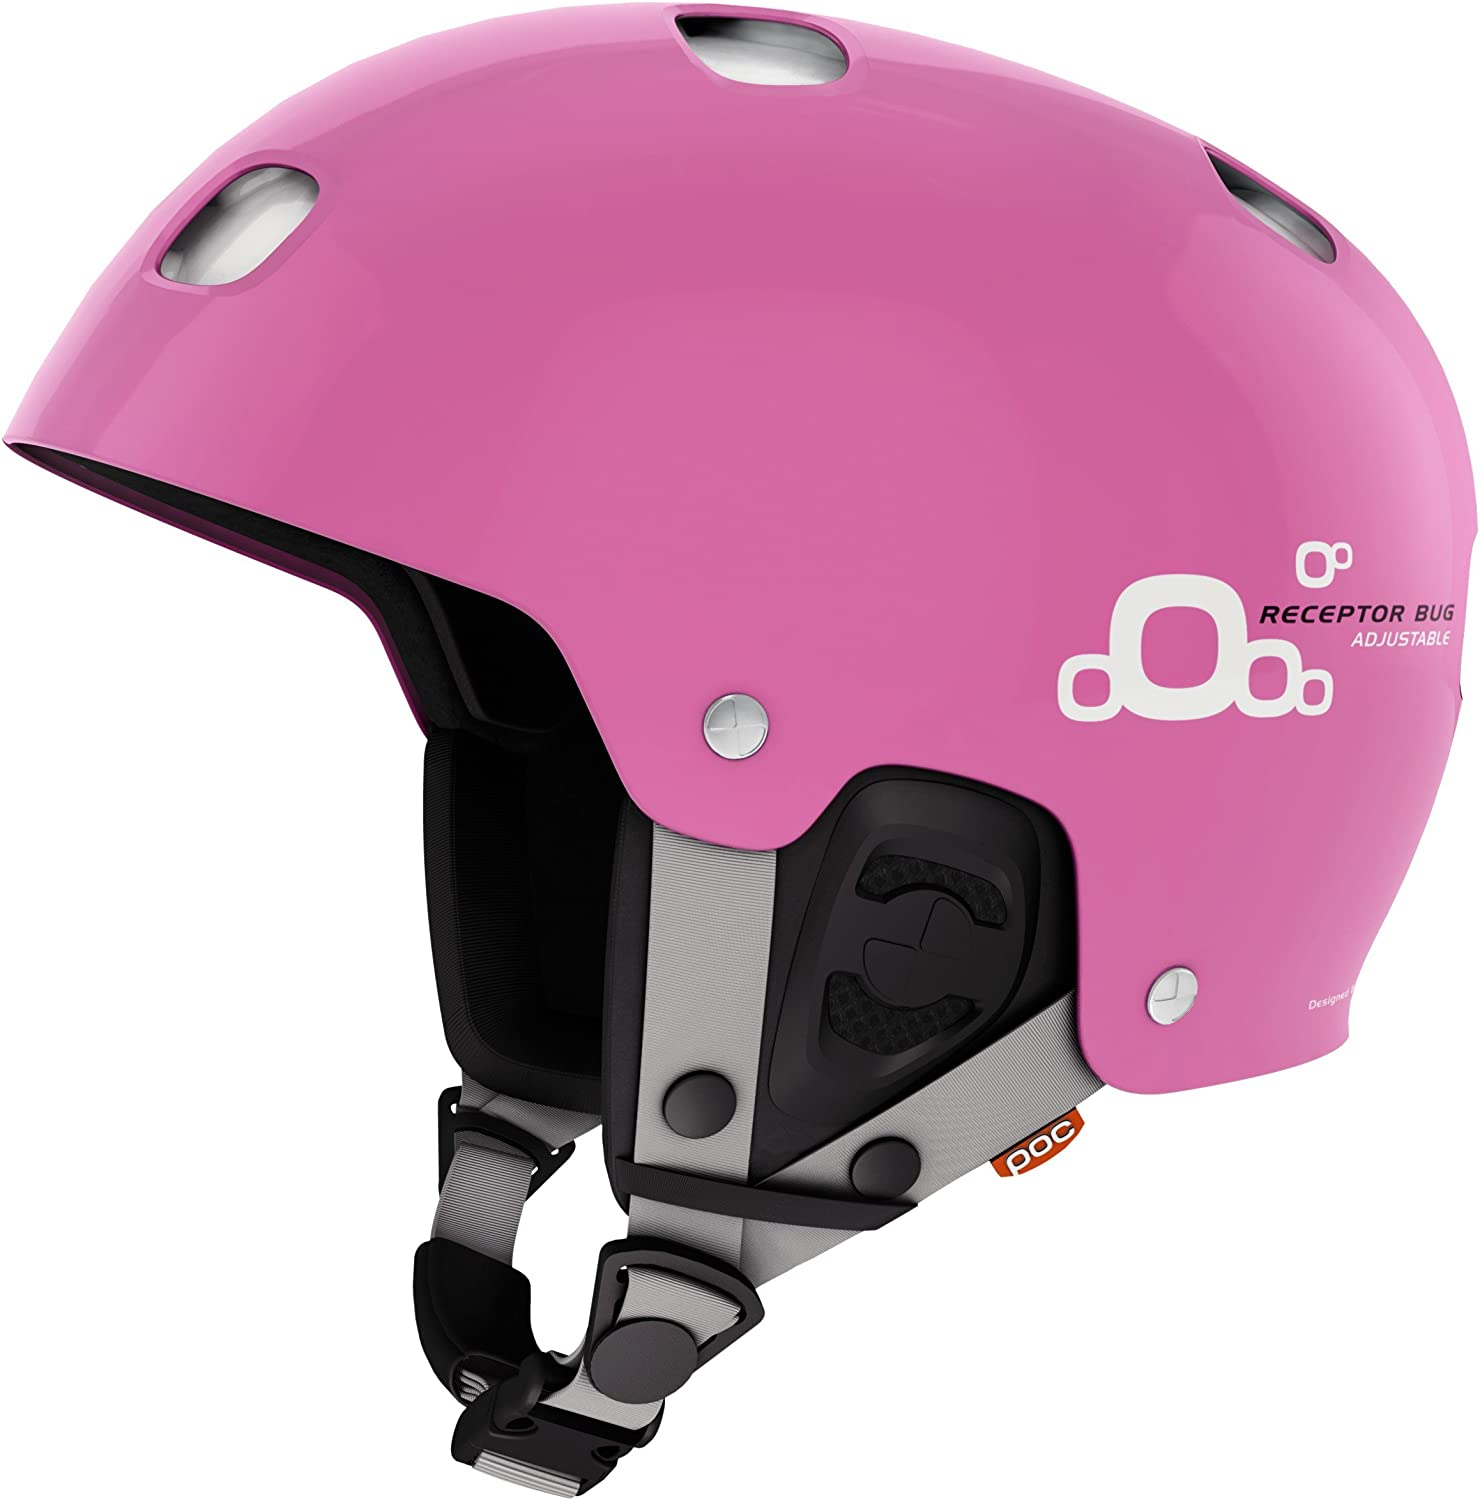 POC Receptor BUG Adjustable 2.0 Ski Helmet